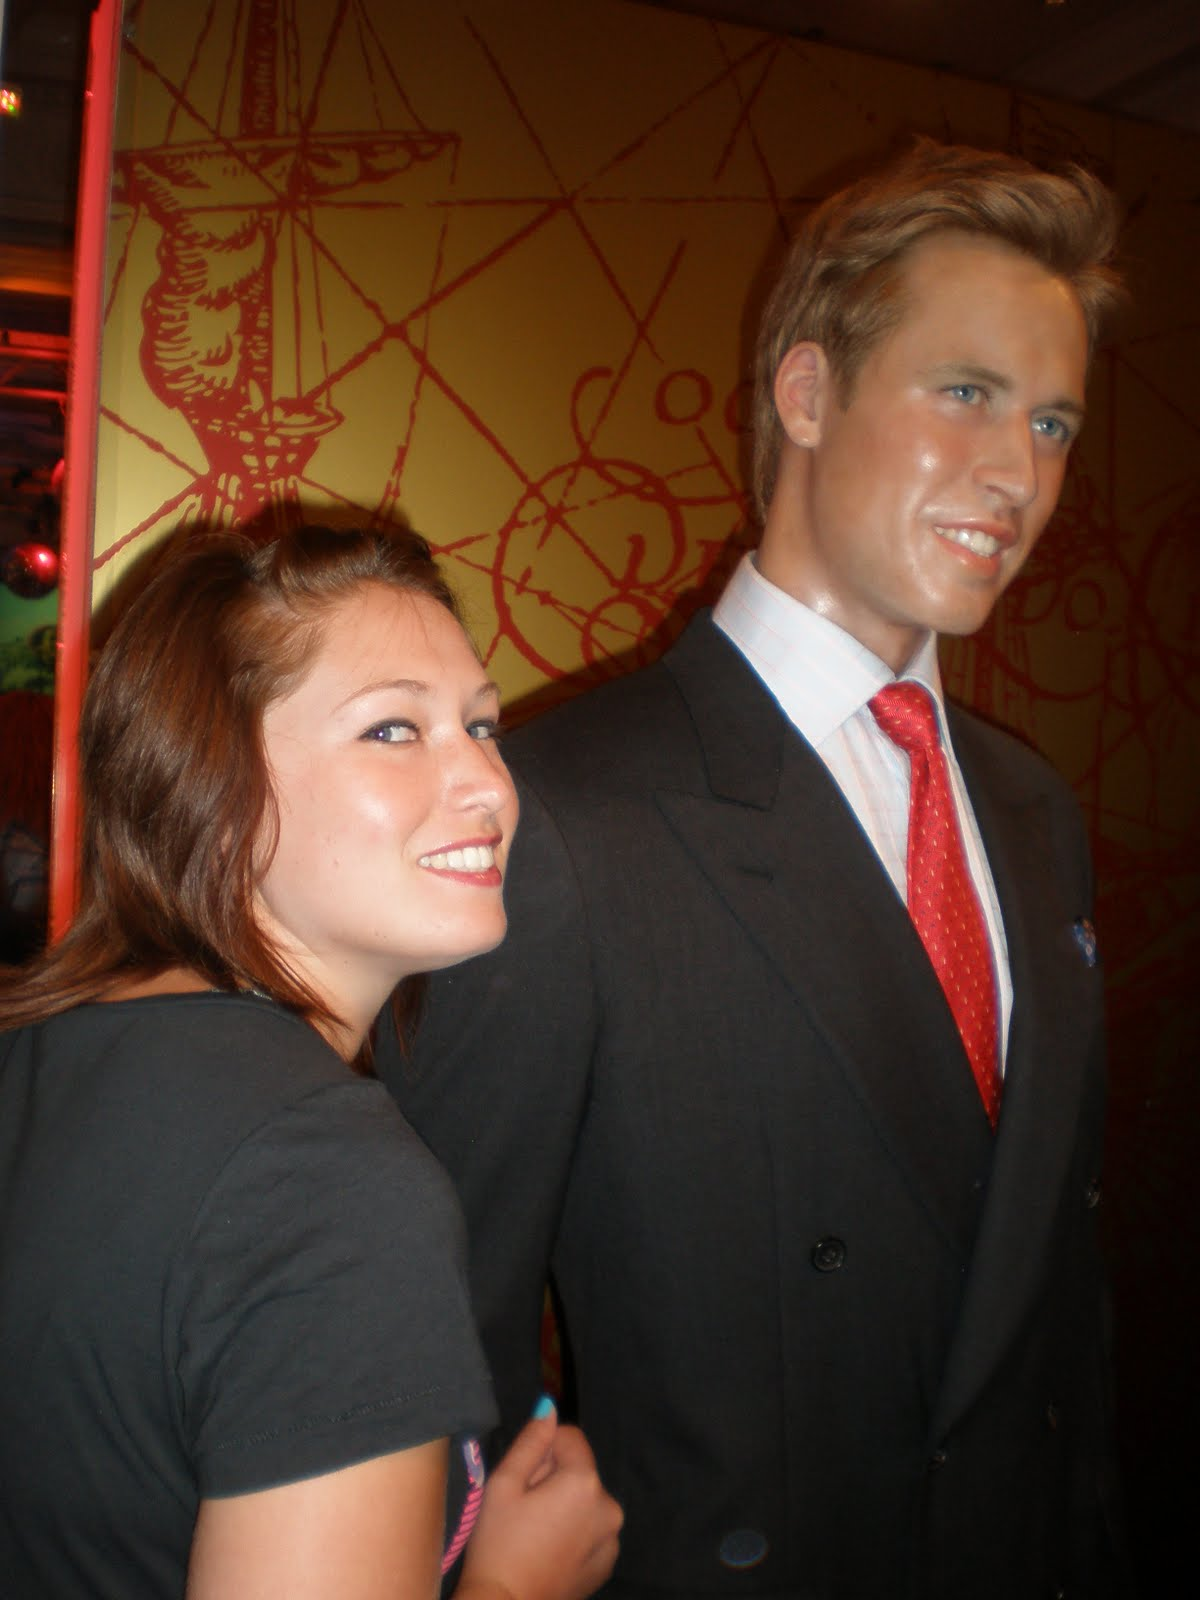 prince william horrible job prince williams wax figure melted prince william wax